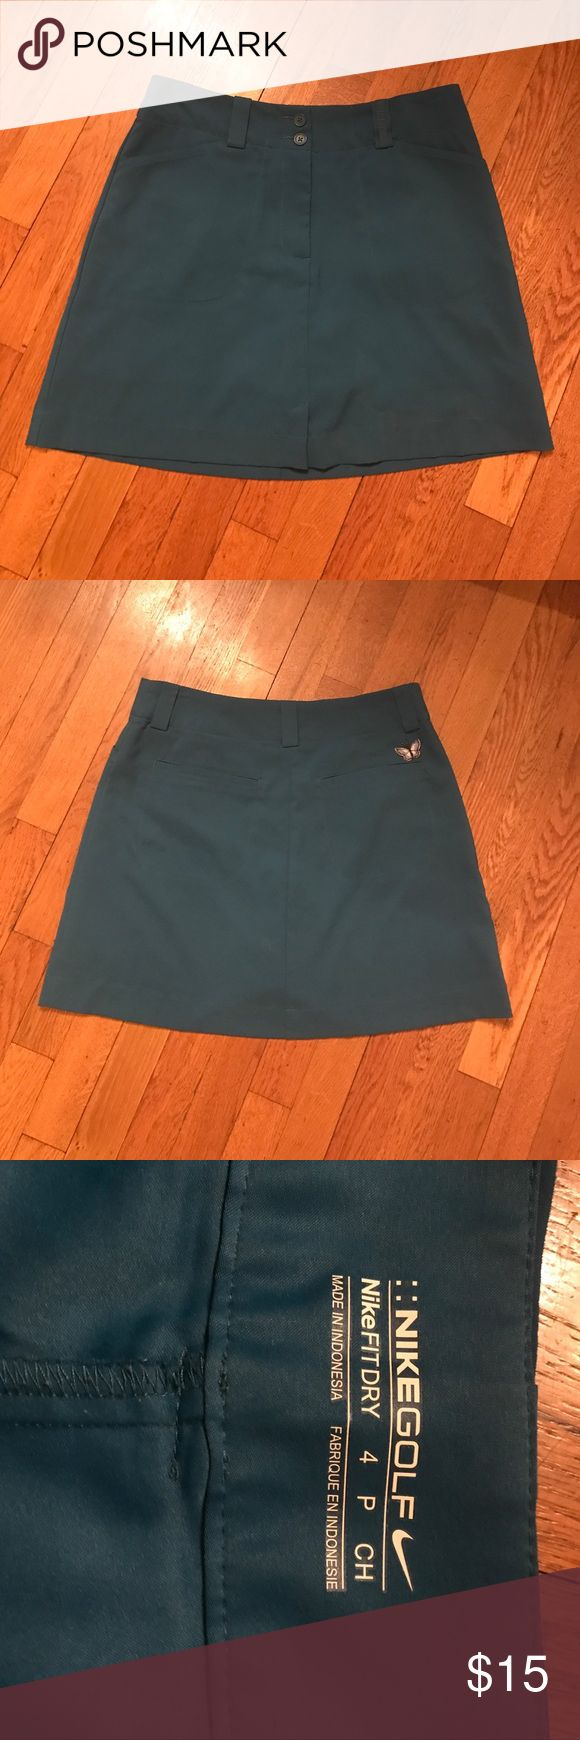 Nike Golf Fit Dry Blue Tennis Mini Skirt Super cute skirt with butterfly detail on the back. Front and back pockets. Excellent condition, tiny snag on front of the skirt as pictured but it really isn't noticeable! 16 inches long. Nike Skirts Mini